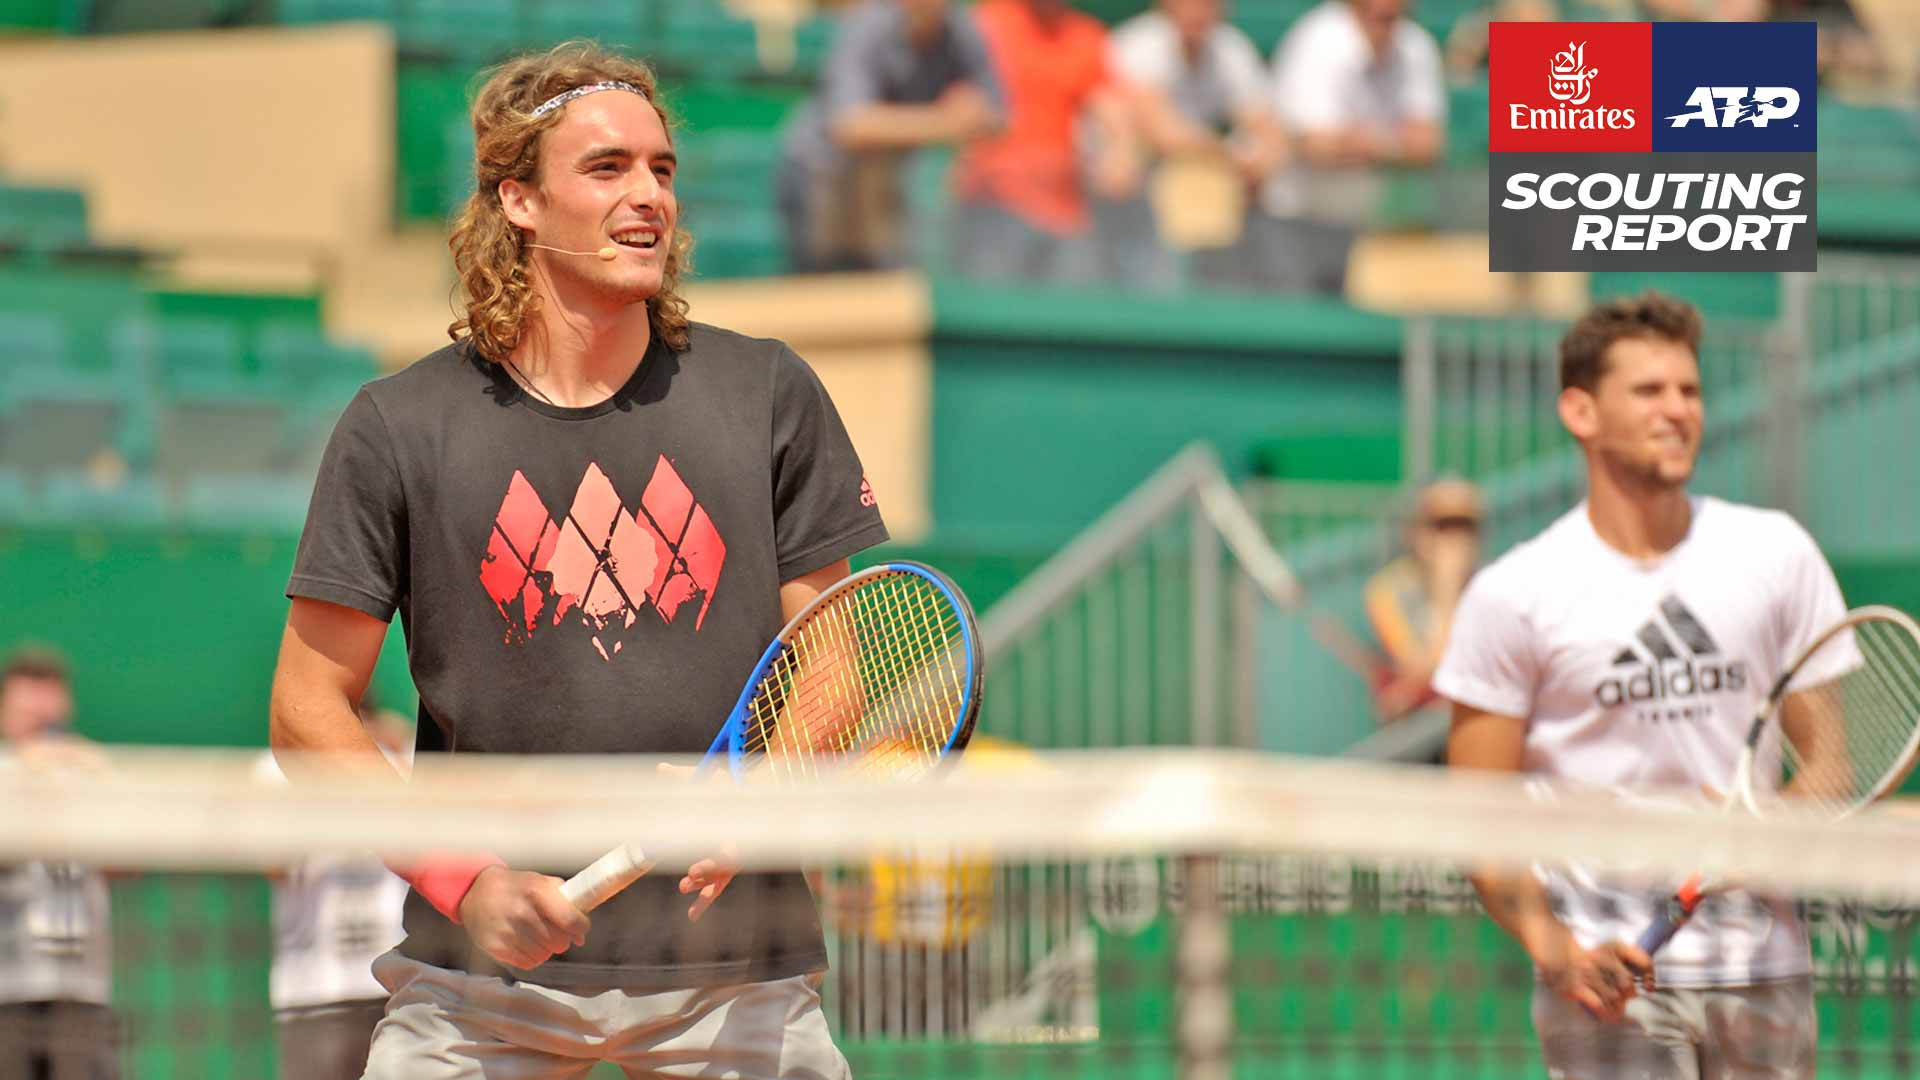 Stefanos Tsitsipas and Dominic Thiem help raise money for charity in Monte-Carlo